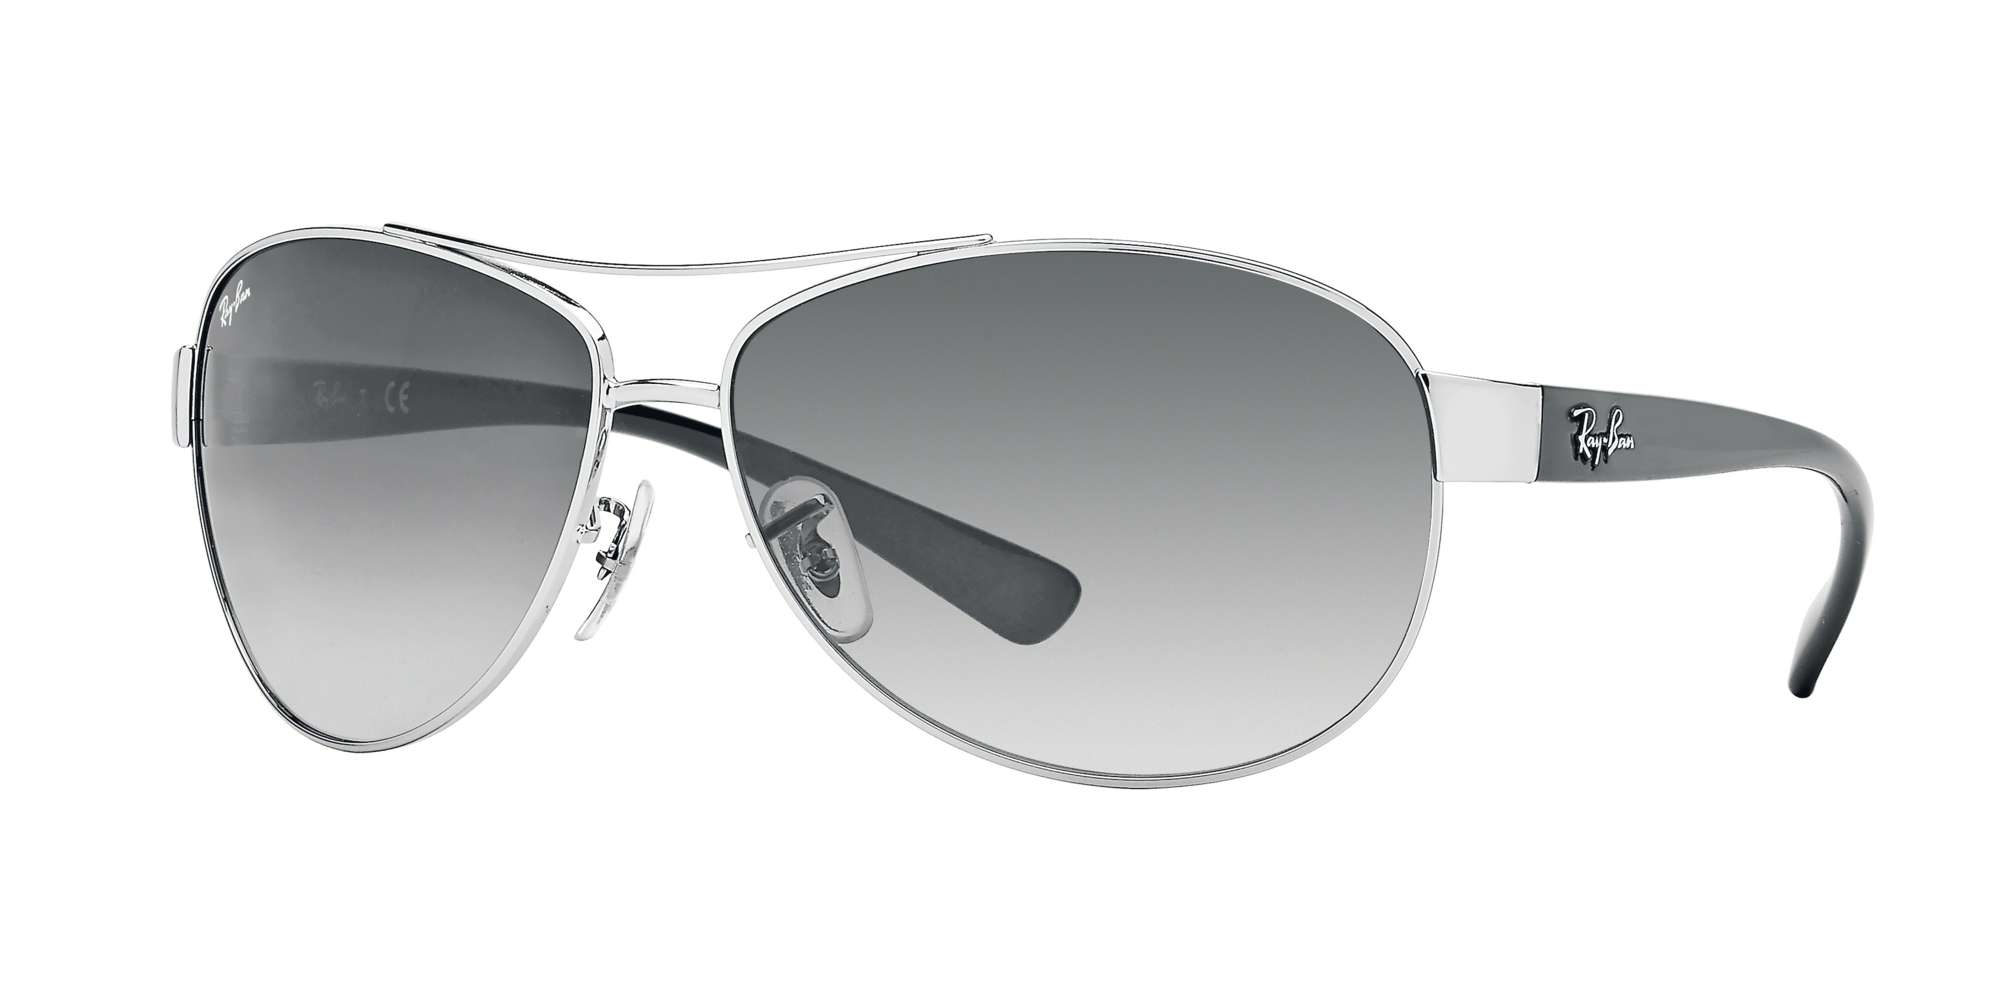 SILVER / GREY GRADIENT lenses